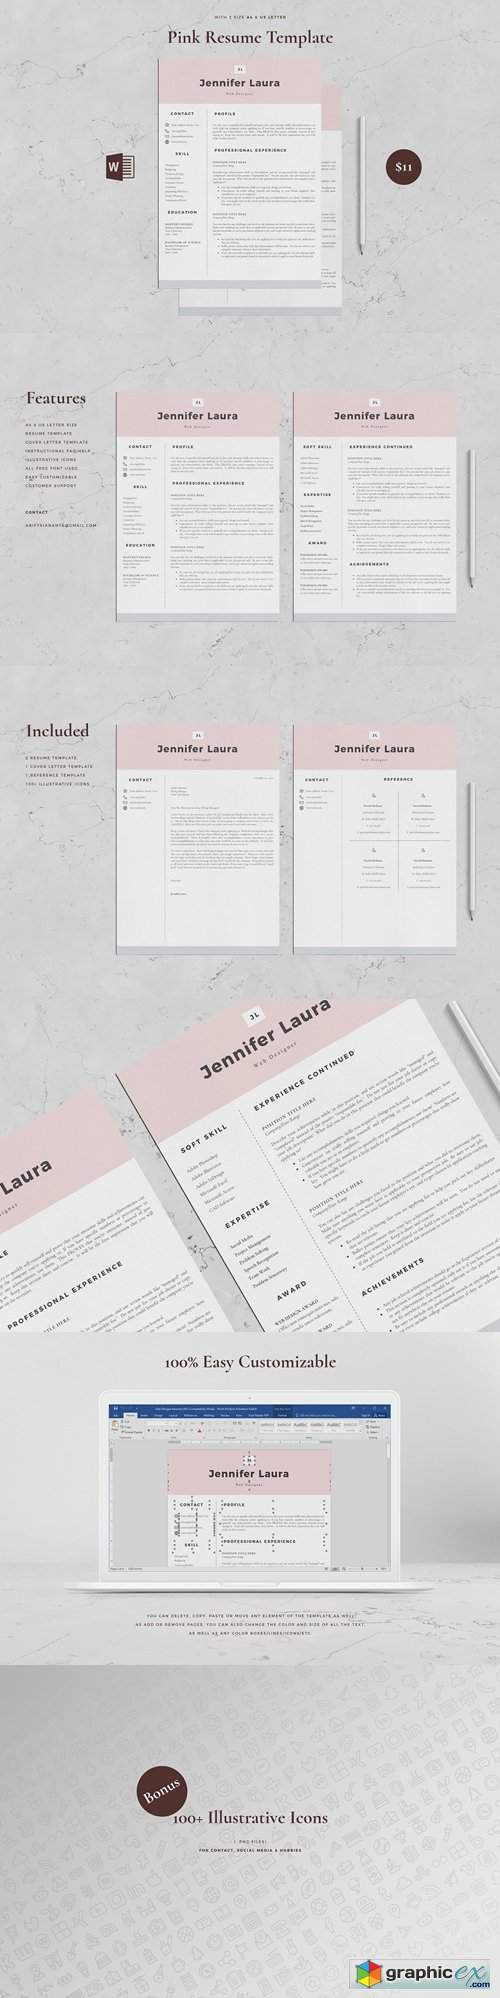 Resume Template 4 Page - Pink 3260014